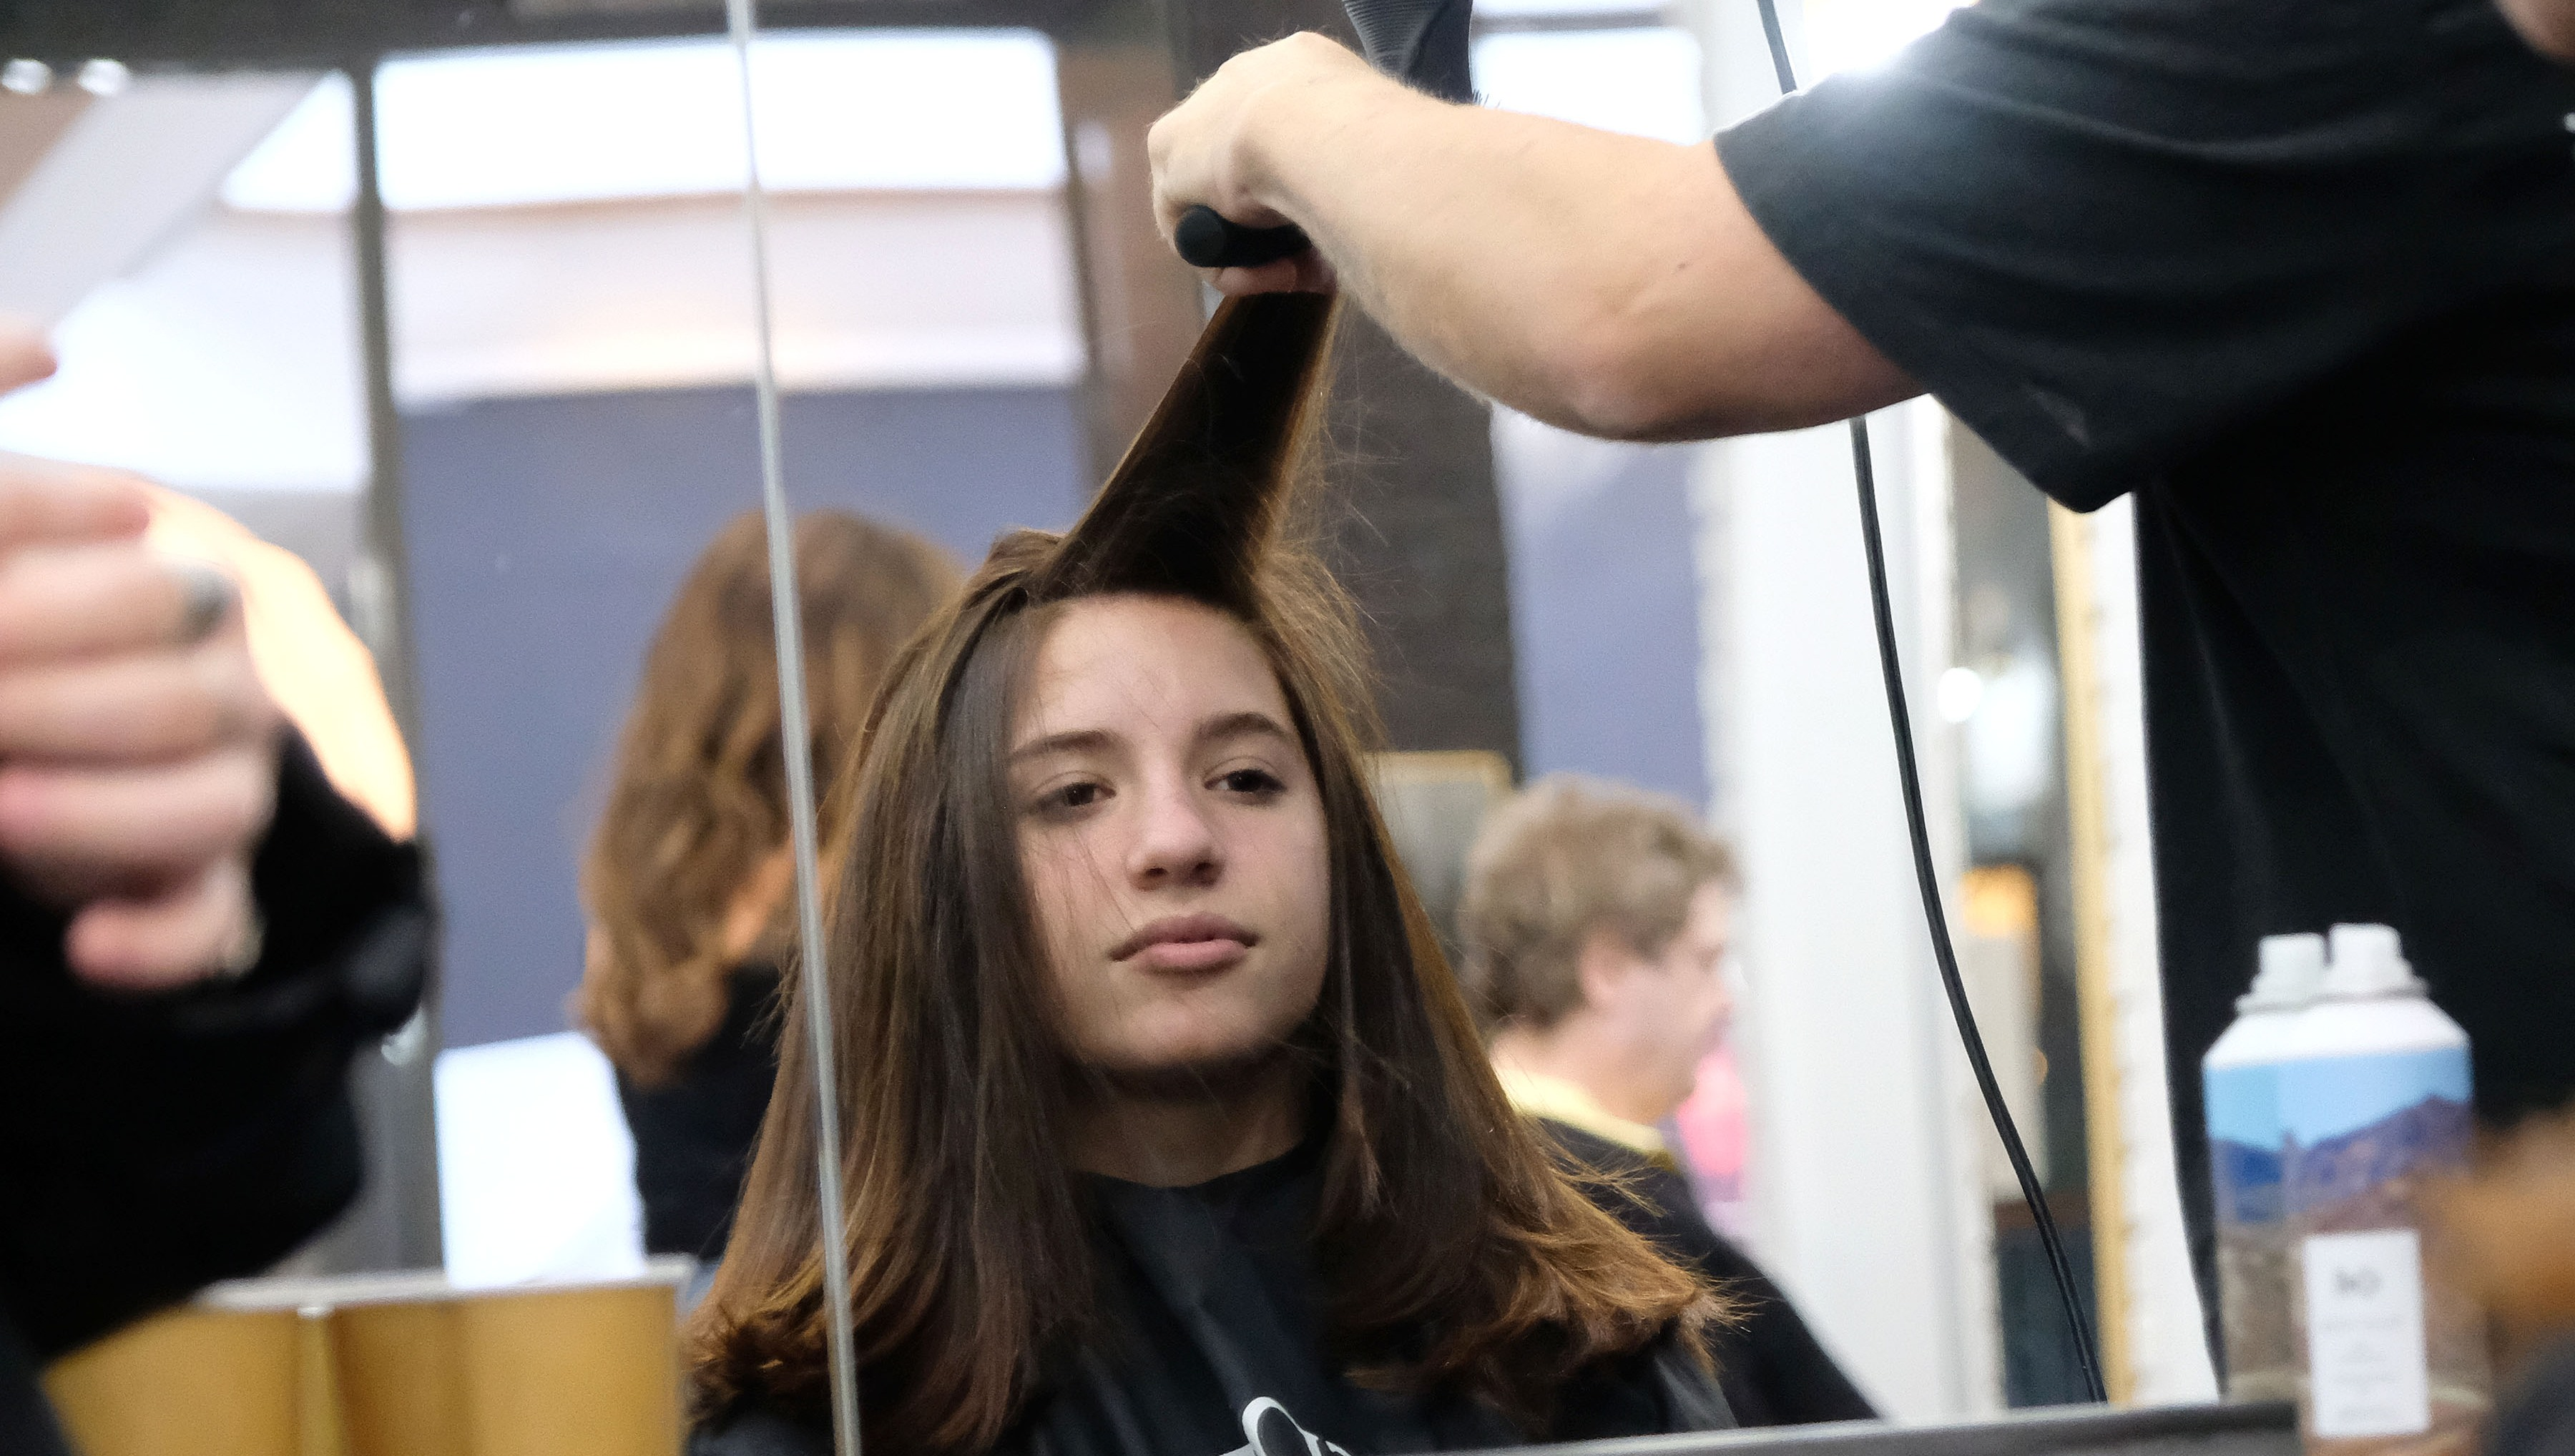 Mackenzie Ziegler shows off her new haircut and color